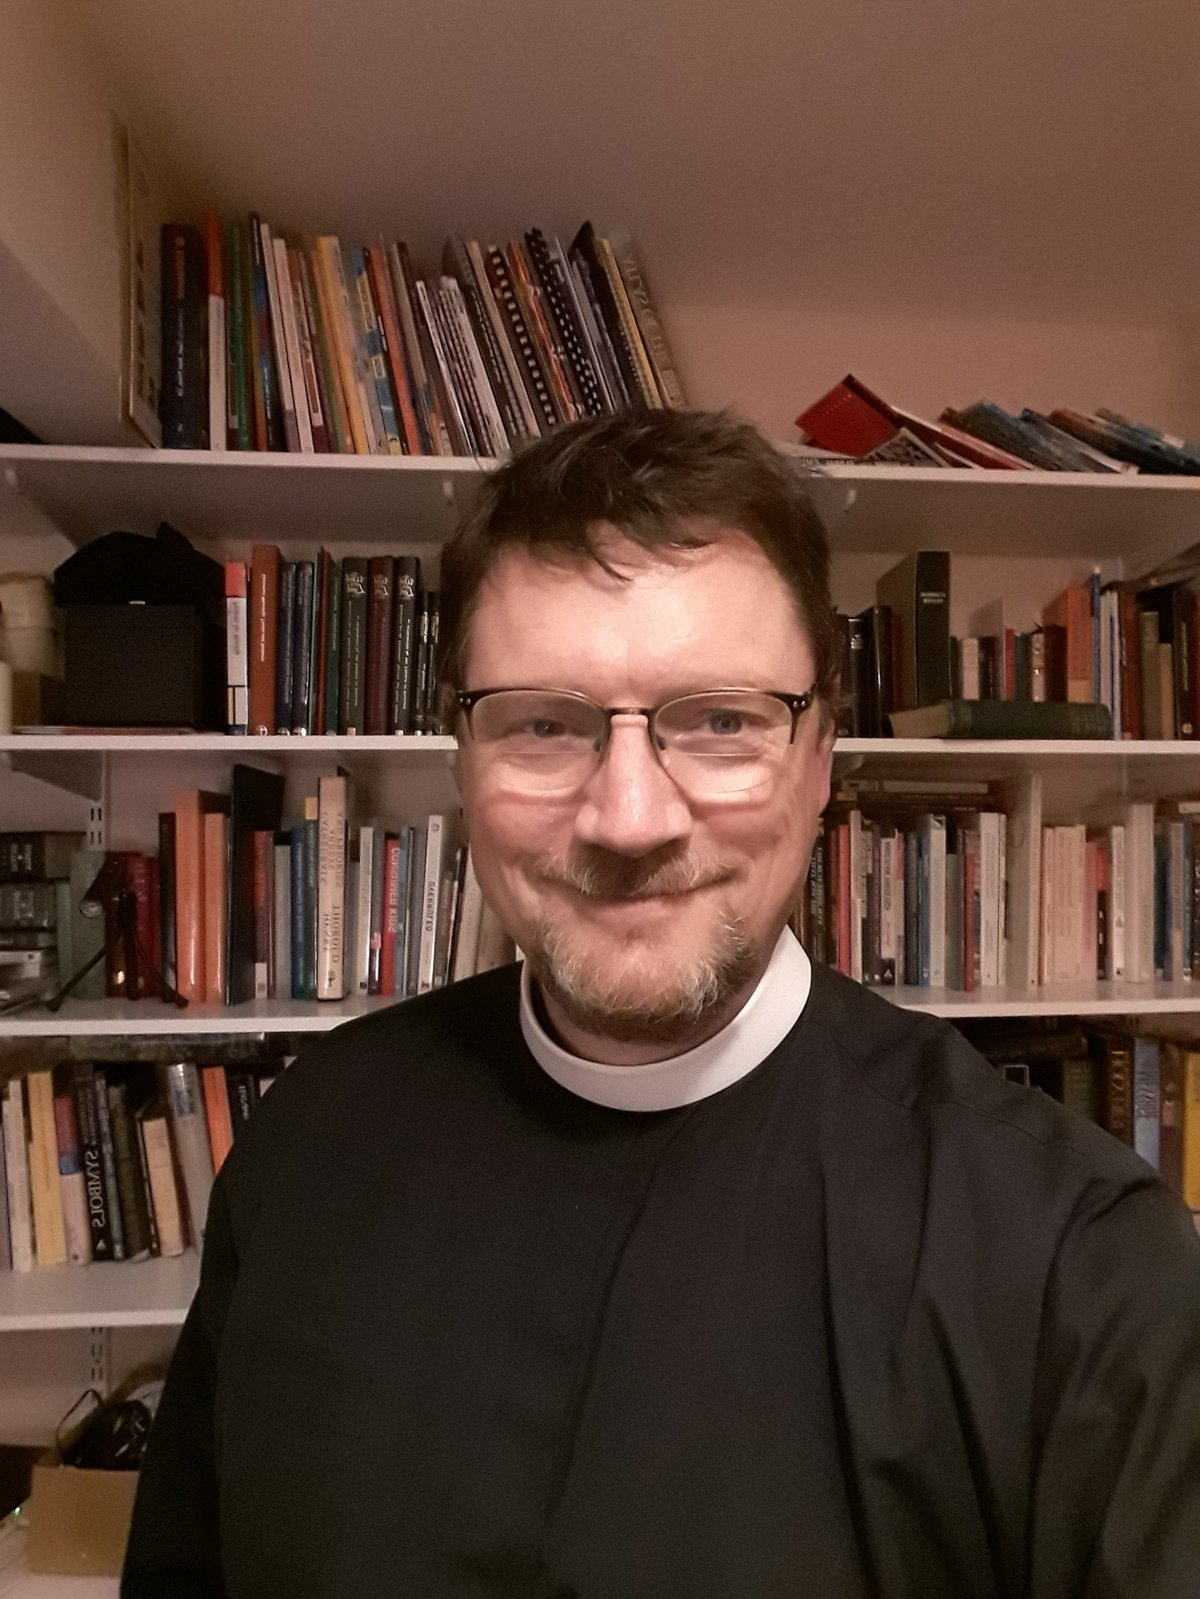 Tim Jones, smiling, wearing glasses and a cassock